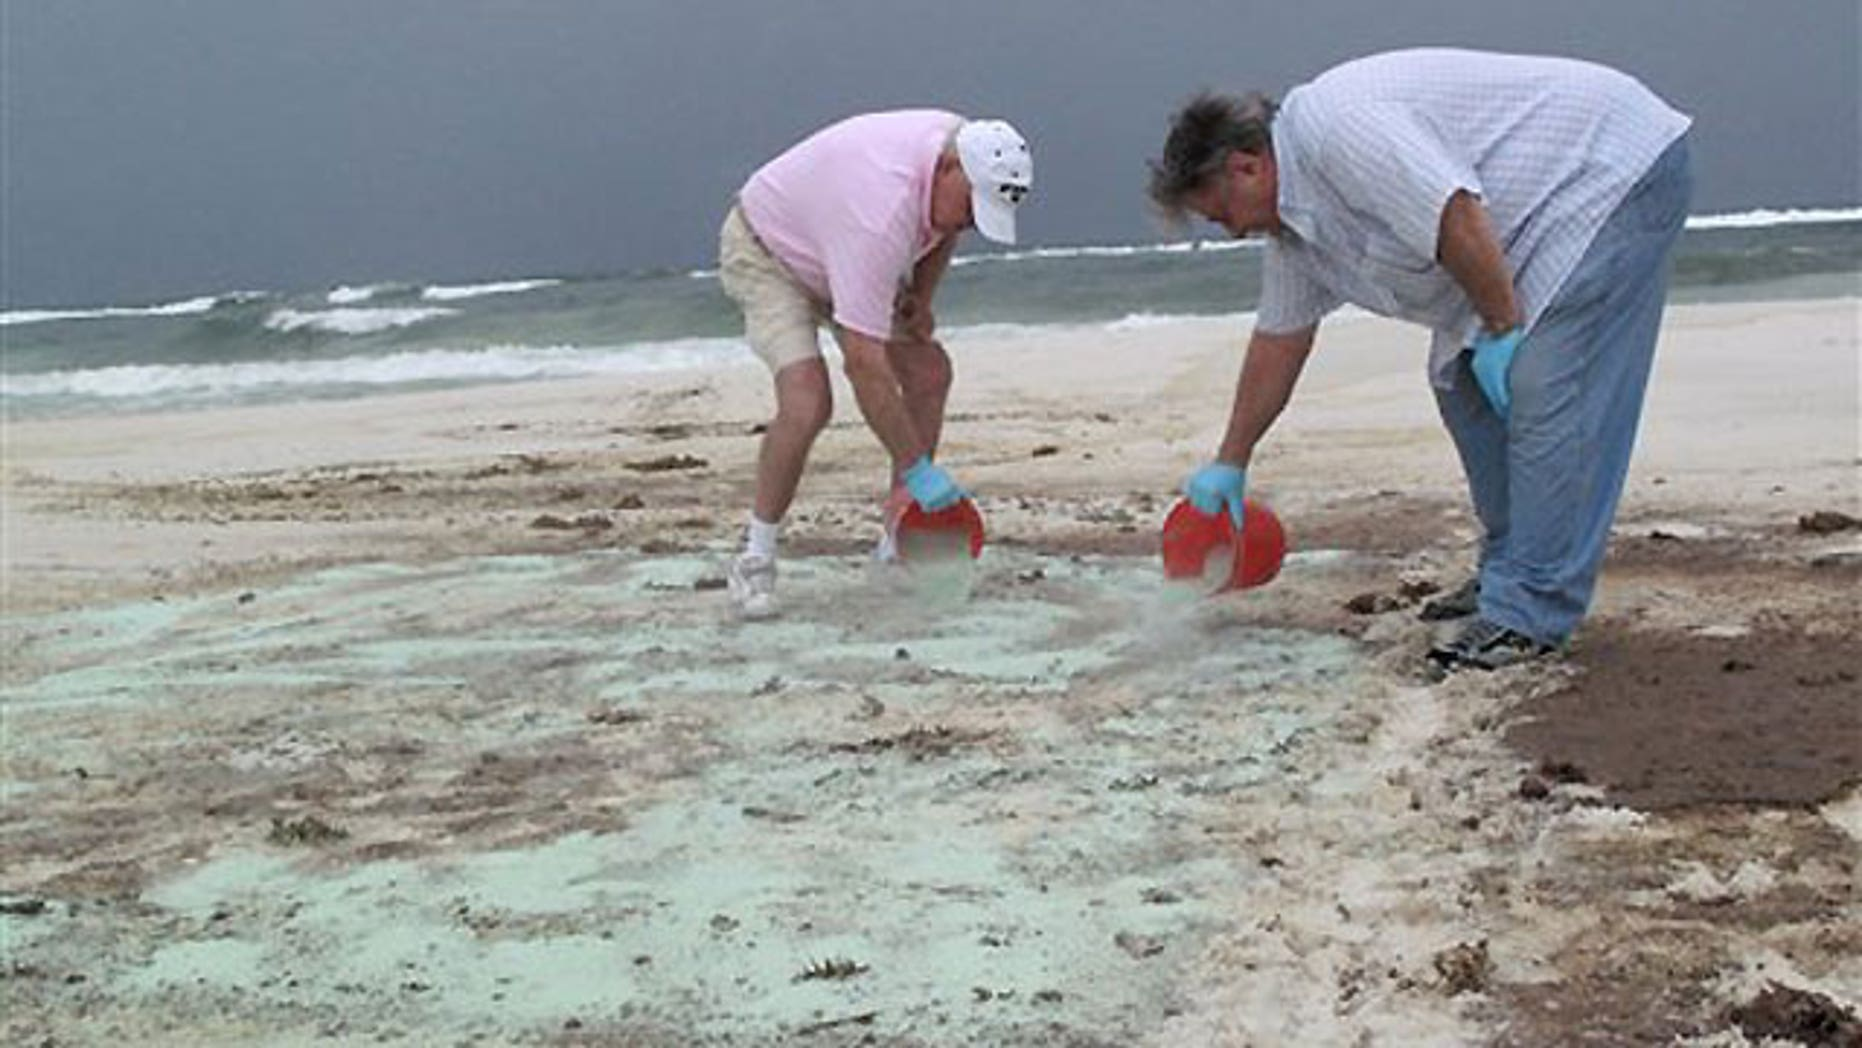 July 1: Workers demonstrate a sand-cleaning technology, called Green Tech, for evaluators from Florida's Department of Environmental Protection and BP on Pensacola Beach.